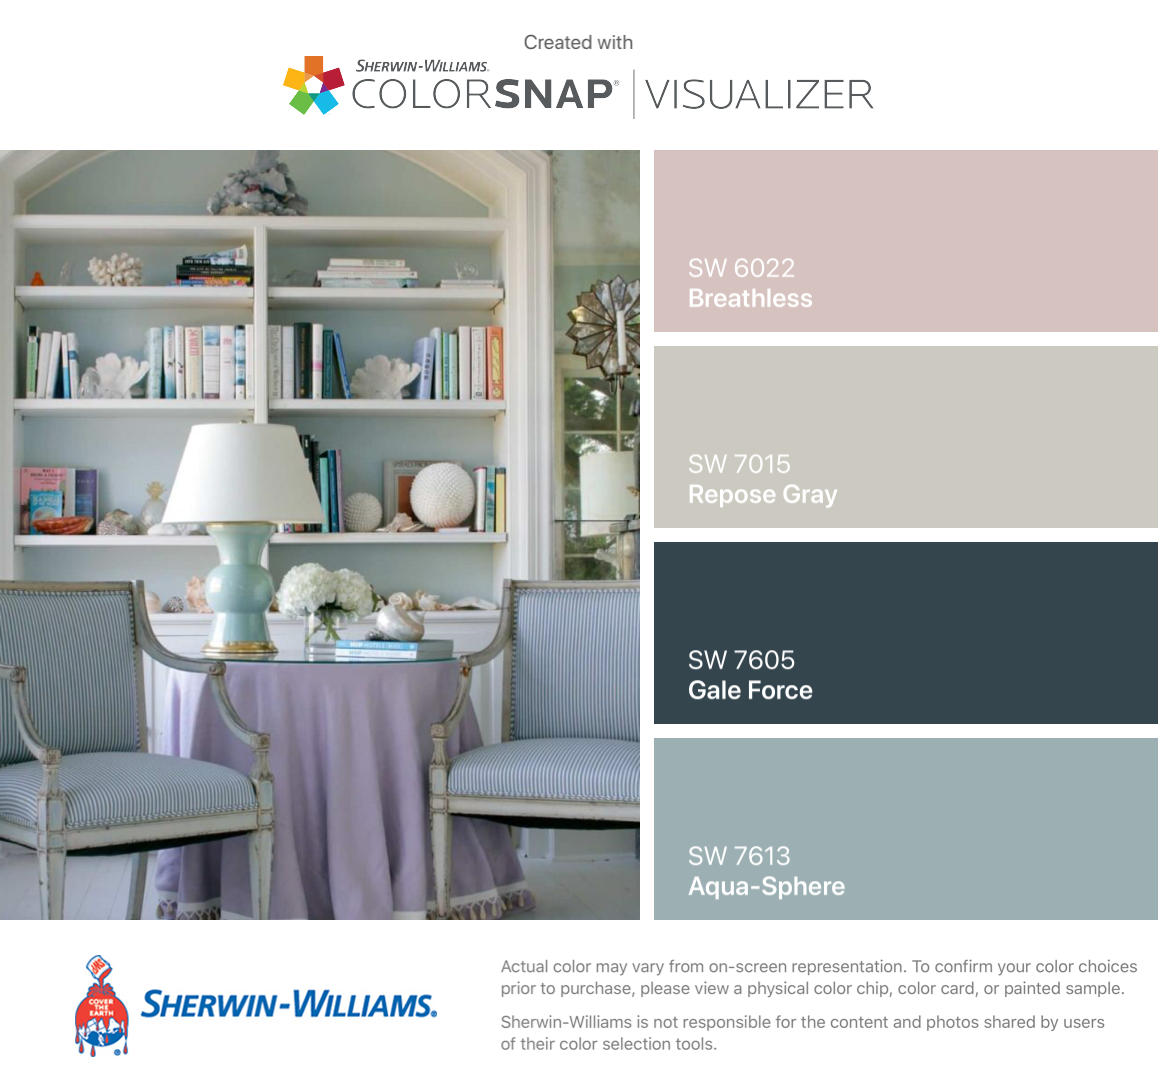 I Found These Colors With Colorsnap Visualizer For Iphone By Sherwin Williams Breathless Sw 6022 Repose Gray Sw 7015 House Colors Repose Gray New Homes